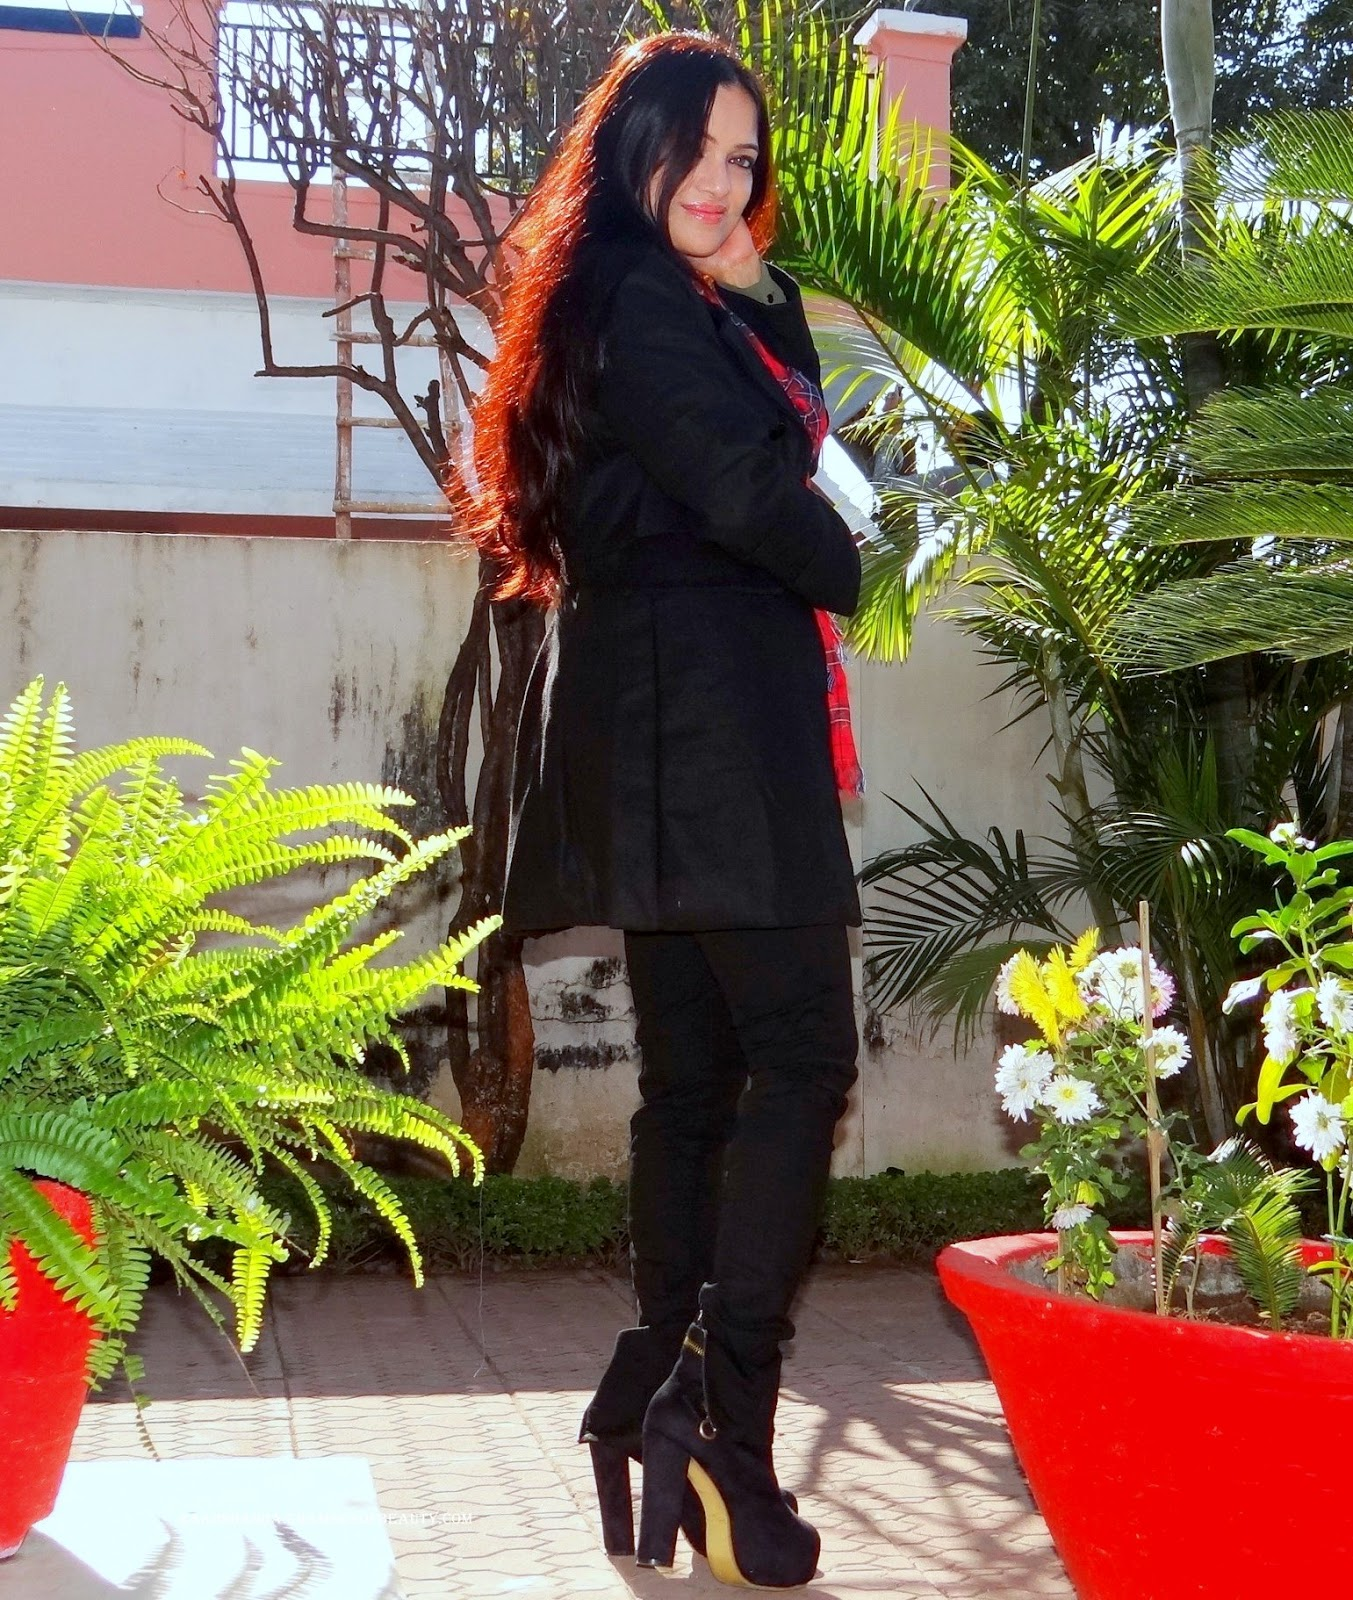 FASHION BLOGGER, winter style, OOTD, OUTFIT OF THE DAY